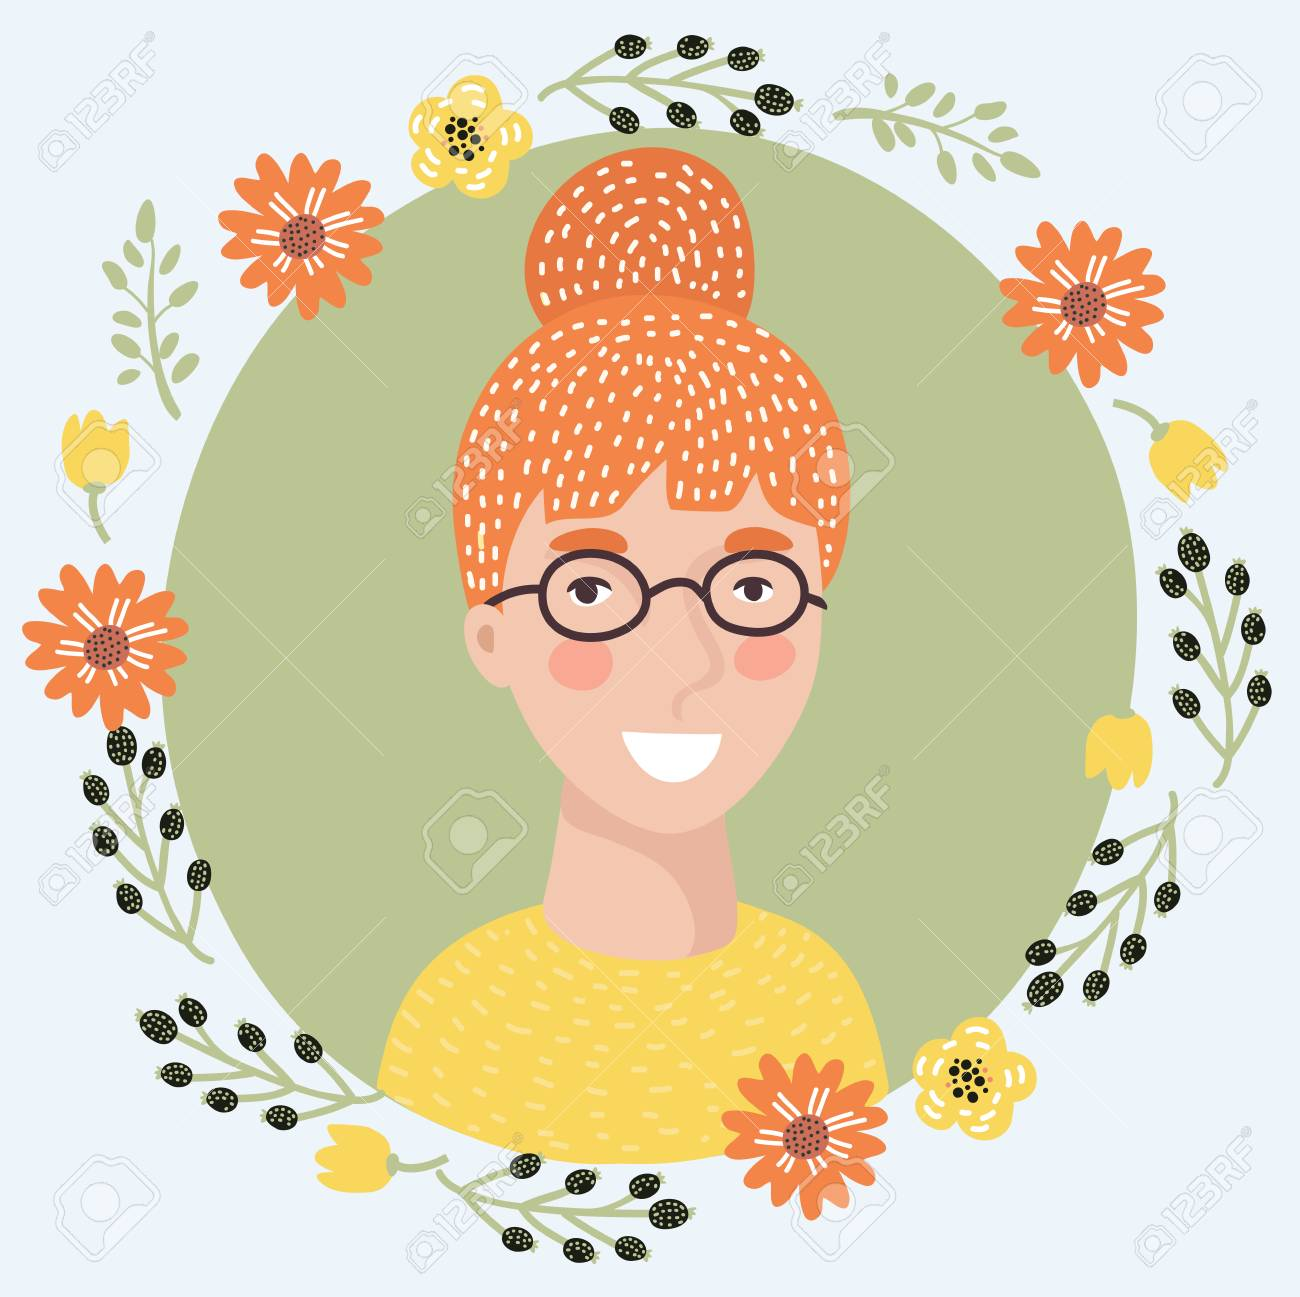 Vector illustration of cartoon young woman face icon. Pretty intelligent redhead girl on glasses. Female avatar portrait decorated with flowers - 95685712